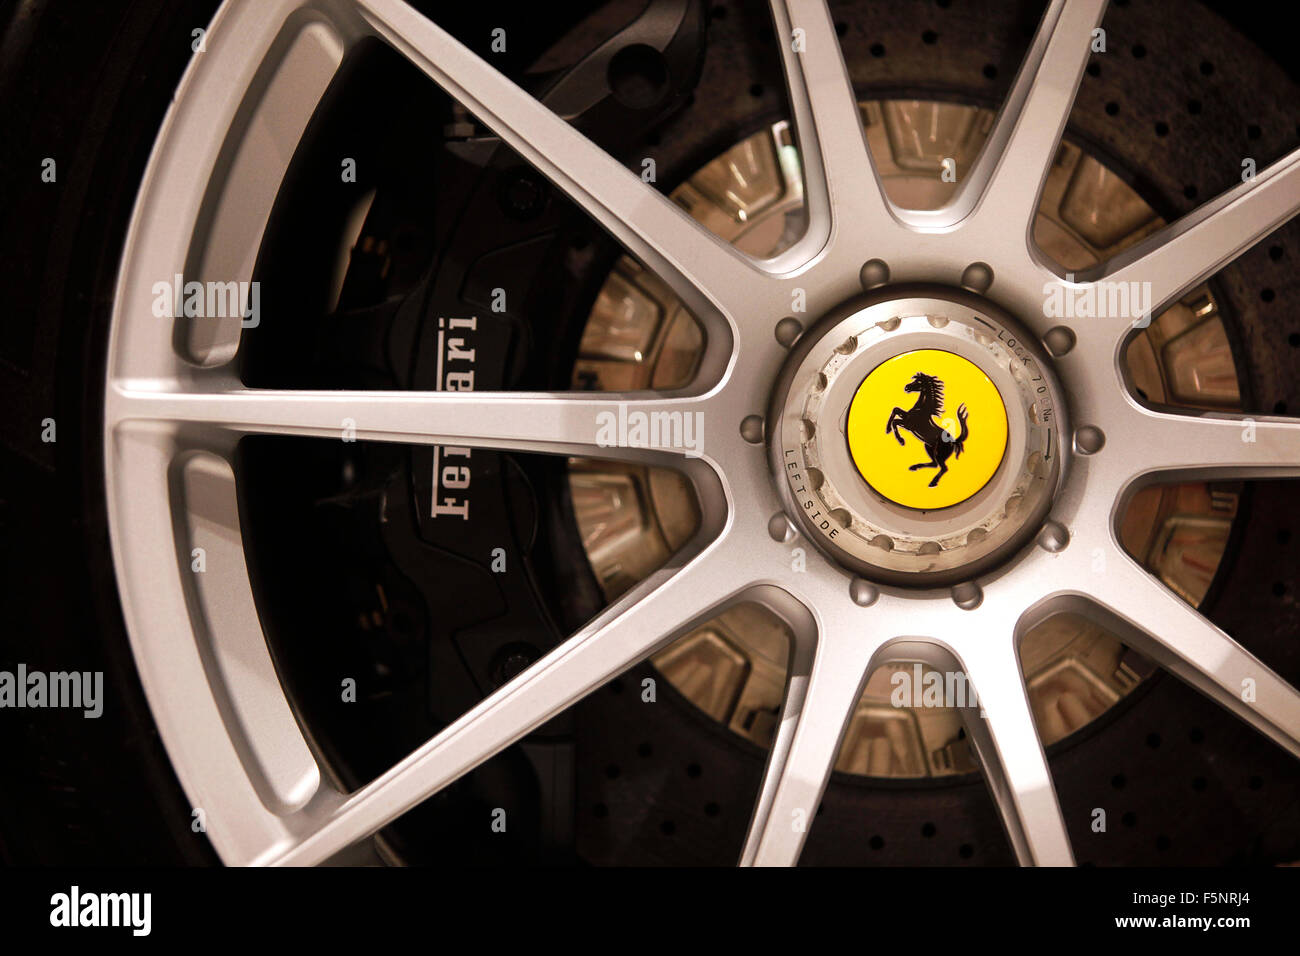 Alloy wheel detail of a Ferrari FXXK (2014) at the Museo Ferrari in Maranello, Italy. - Stock Image